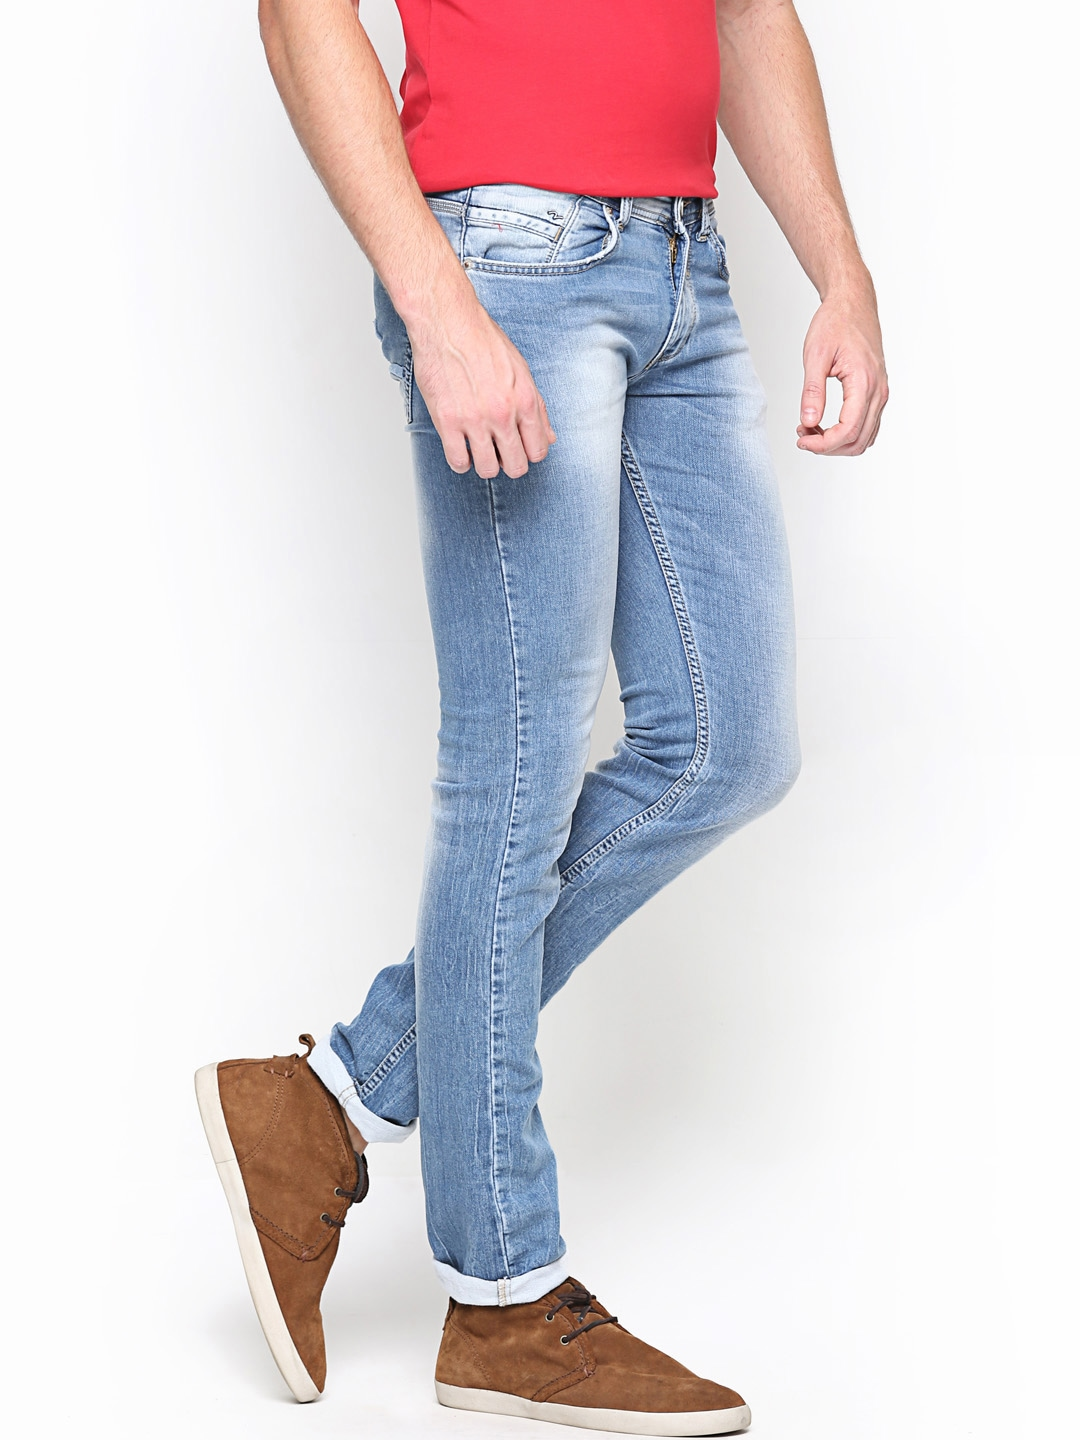 Mens Tight Fit Jeans ($ - $): 30 of items - Shop Mens Tight Fit Jeans from ALL your favorite stores & find HUGE SAVINGS up to 80% off Mens Tight Fit Jeans, including GREAT DEALS like Men's Galaxy by Harvic Men's Straight Leg Slim Fit Jeans 32 Dark Blue Cotton ($).